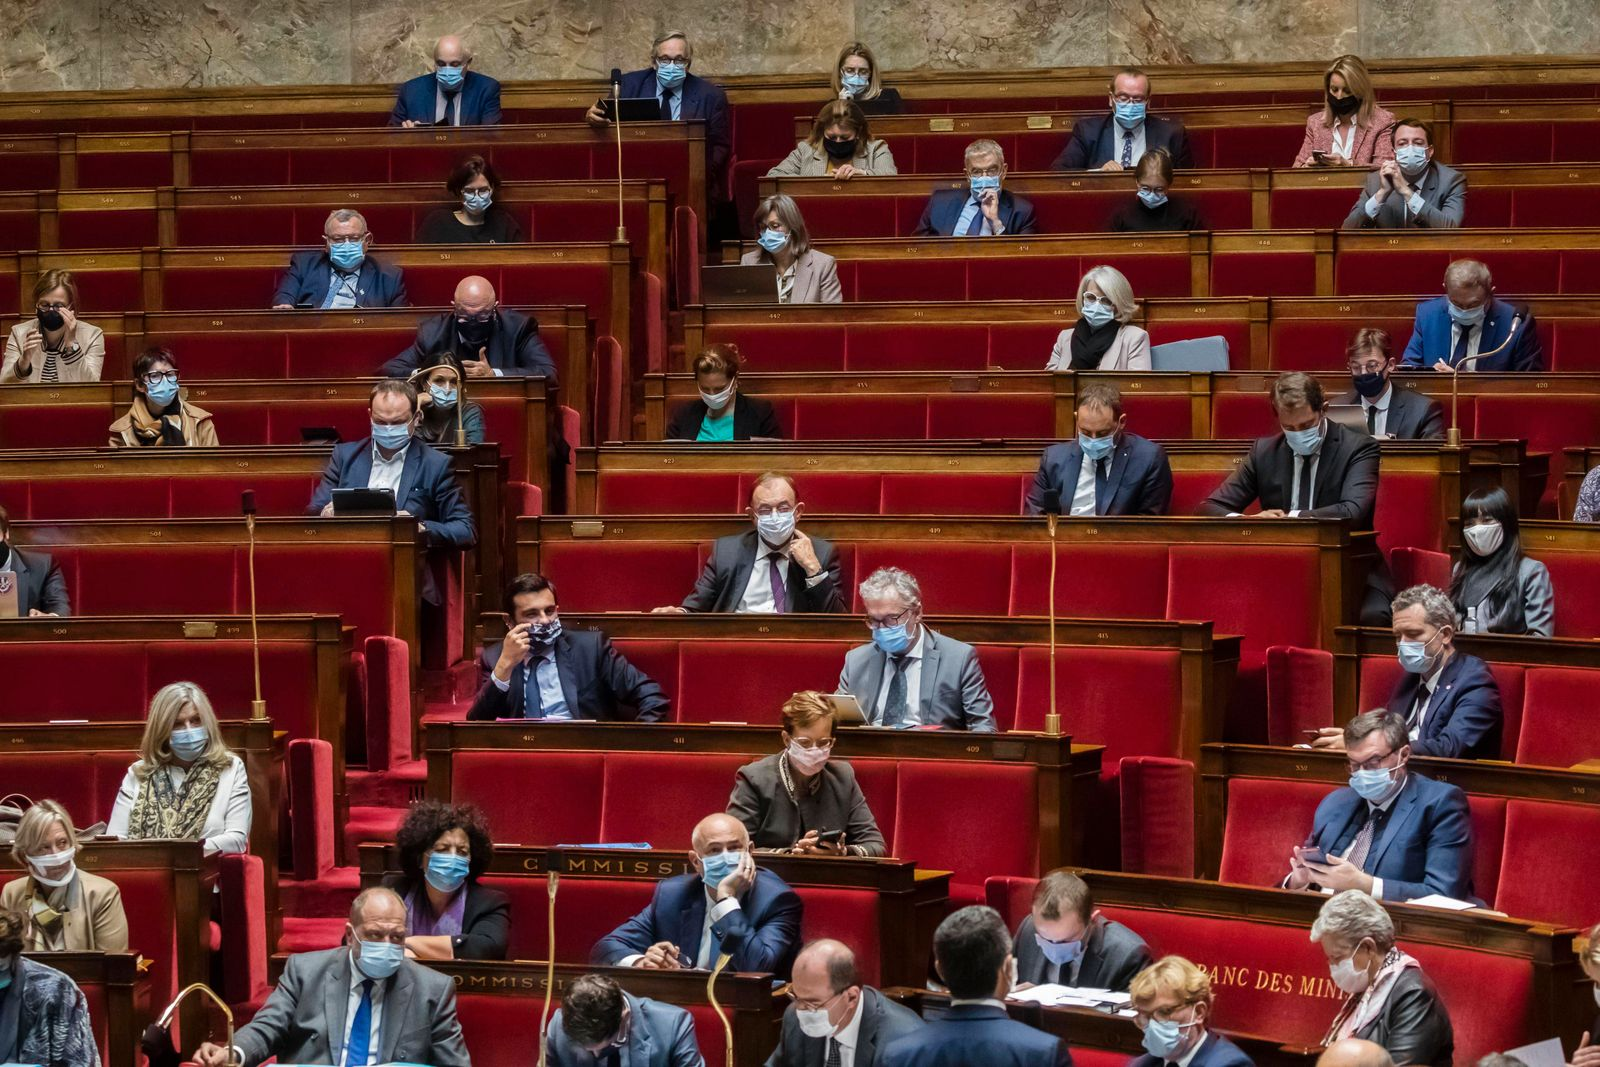 Frankreich, Sitzung der Nationalversammlung in Paris Paris, France October 13, 2020 - Weekly session of questions to the